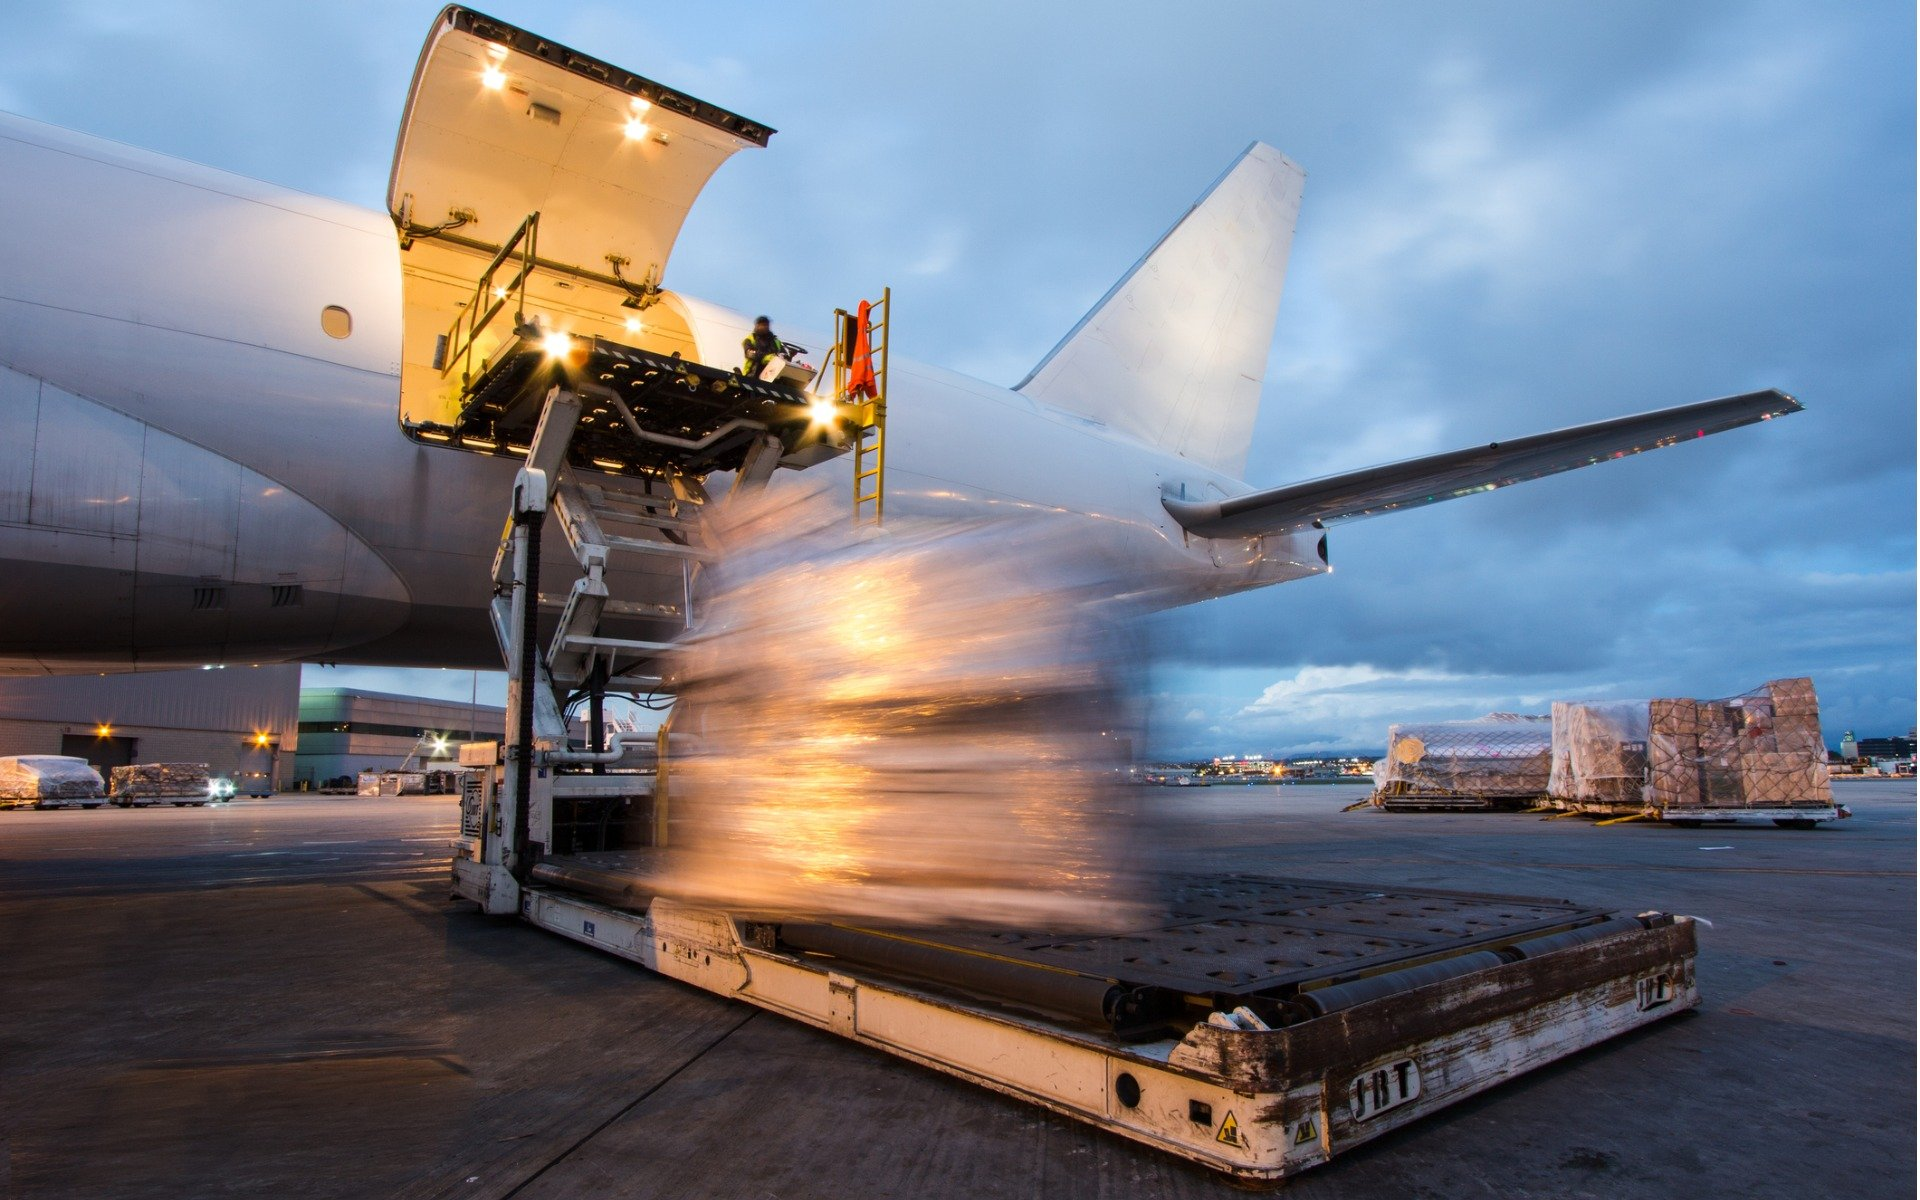 cargo-loading-picture-id1127728208